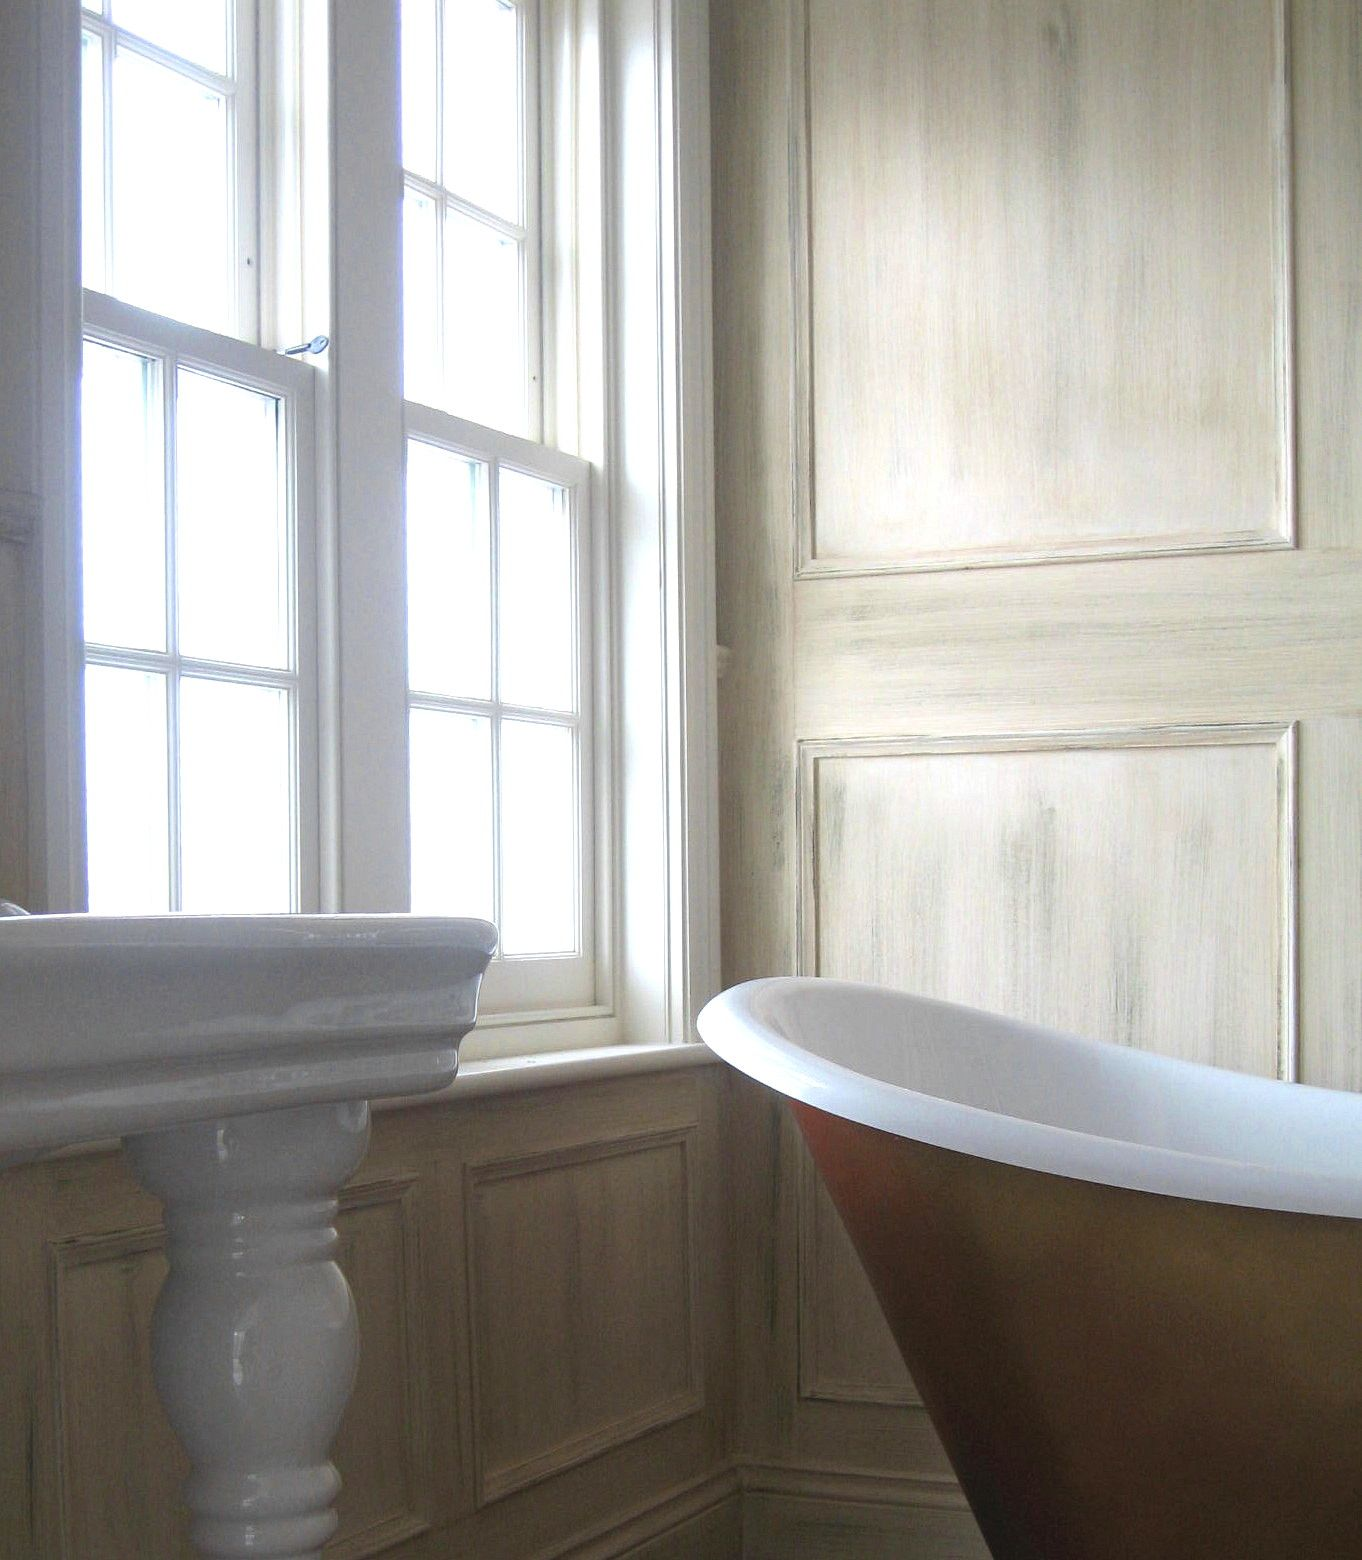 decor tips double hung windows and painting wood paneling with pedestal sink also claw foot tub and how to paint wood paneling for how to paint paneling - Painted Wood Bathroom Interior